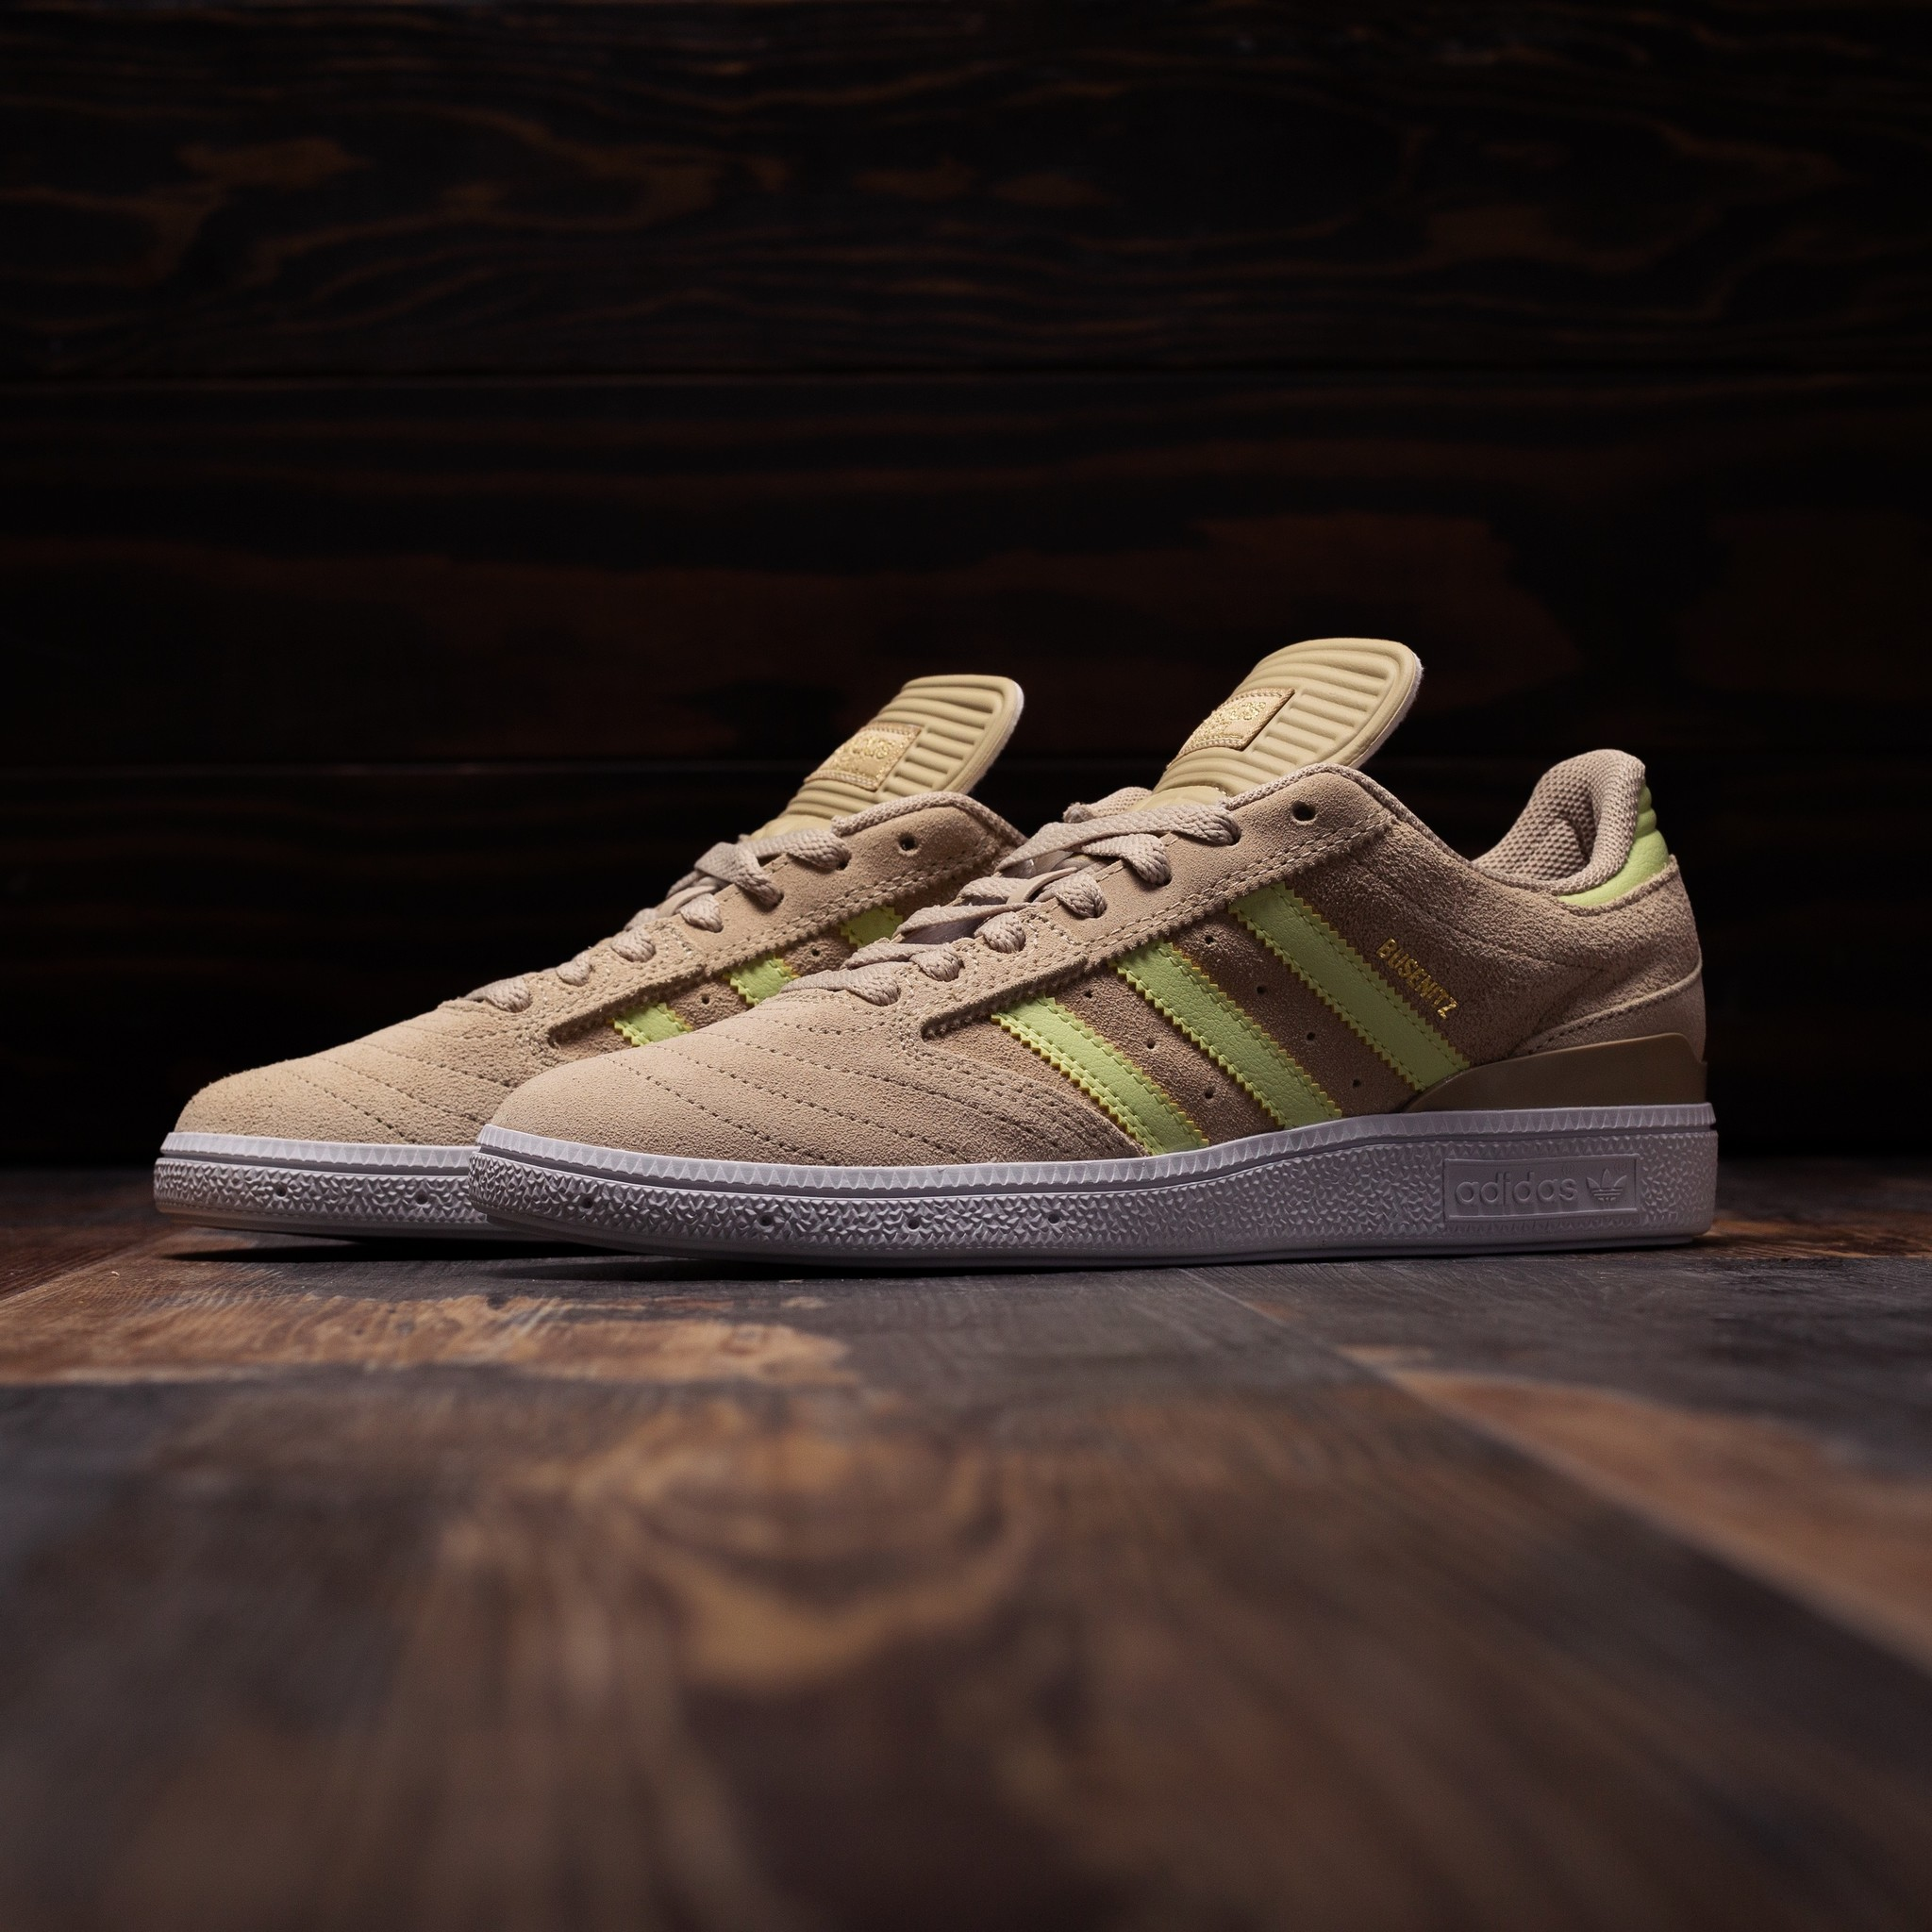 adidas Busenitz Savannah Yellow